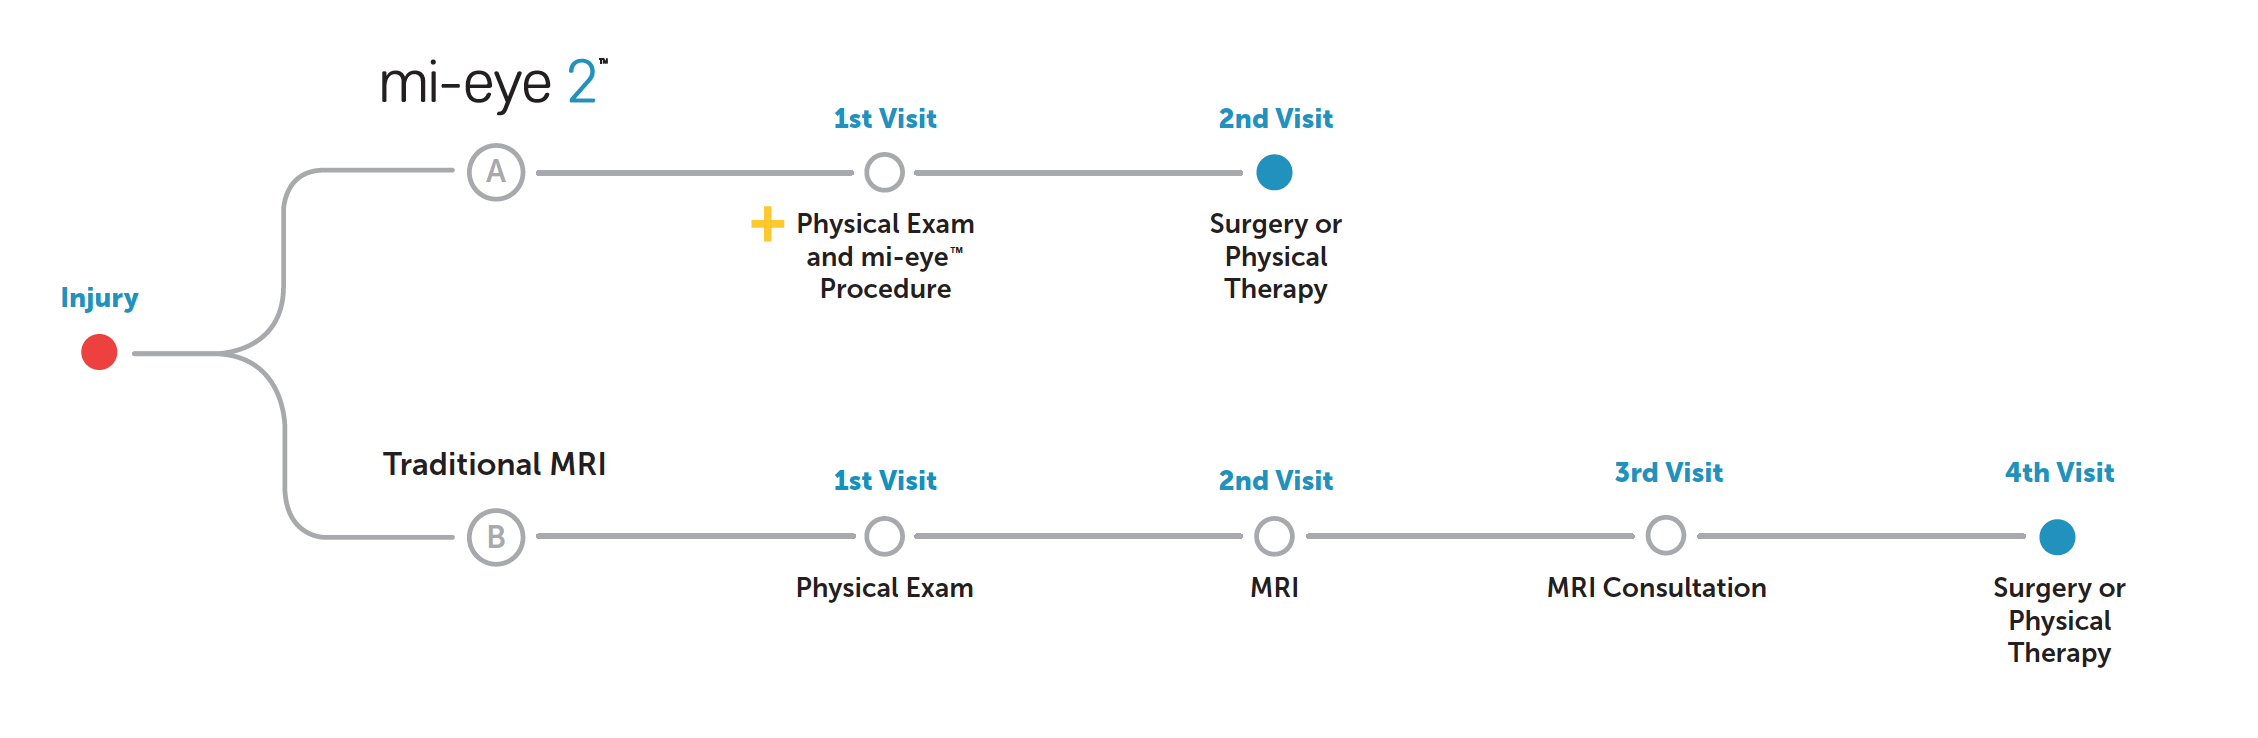 mi-eye-clinic-appointments.png?mtime=20180105180511#asset:610